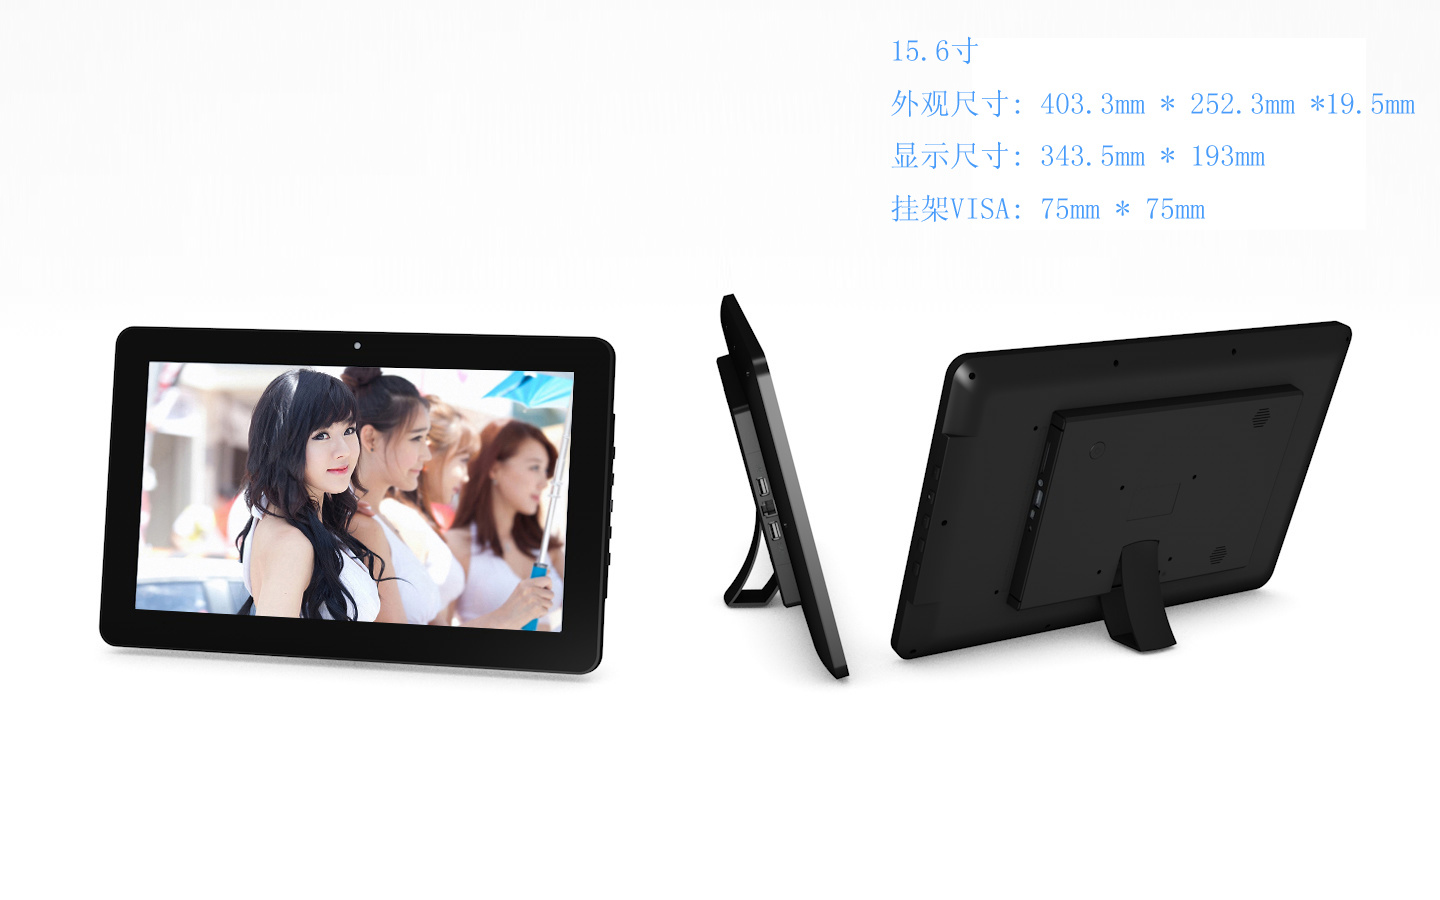 All Size FHD LCD Milti-Function Capacitive/Infrared Touch Screen